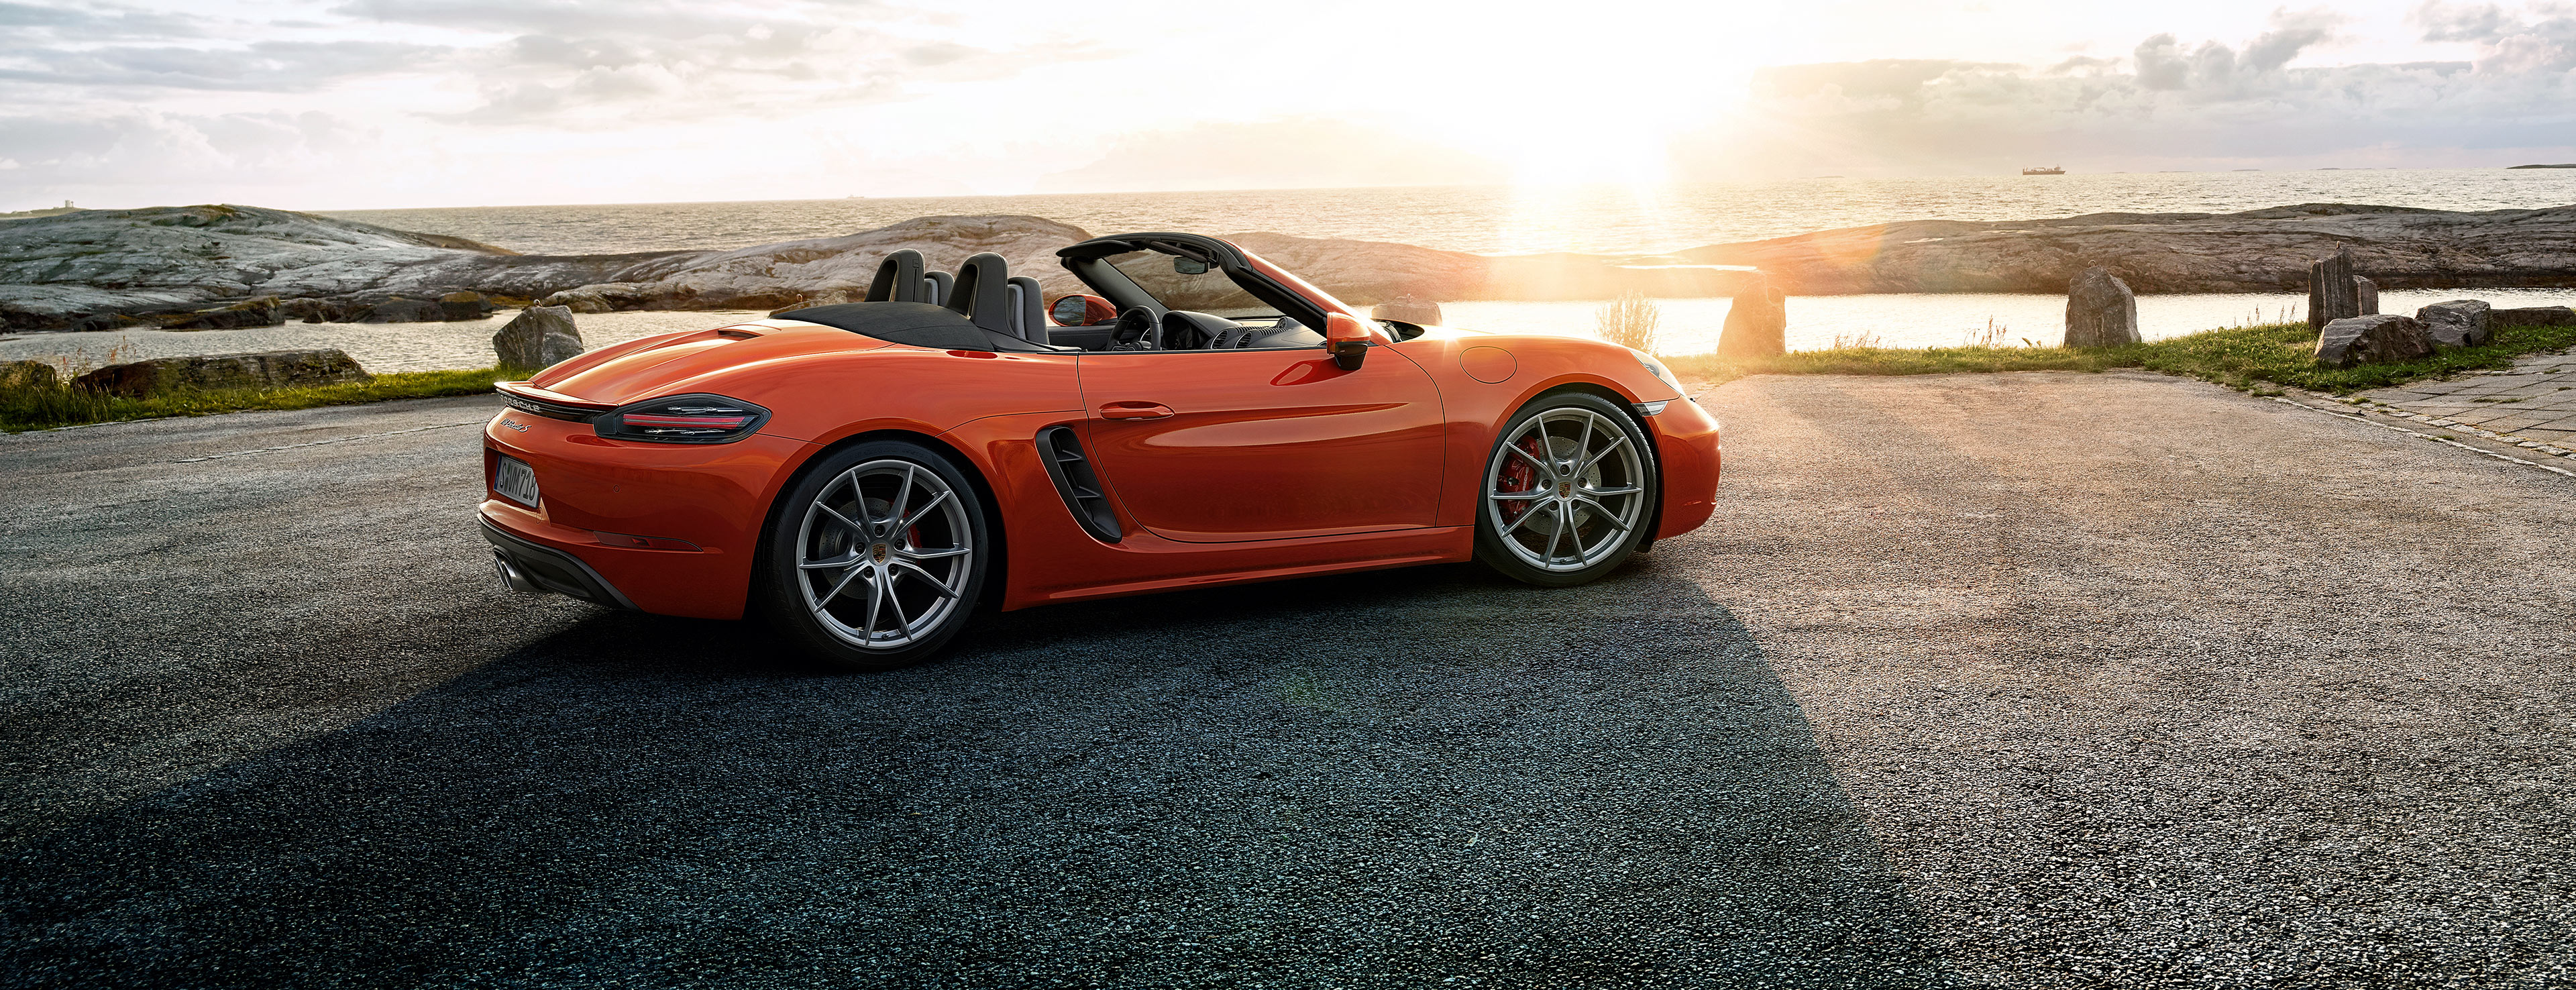 100 porsche 911 price singer 911 teams up with cosworth